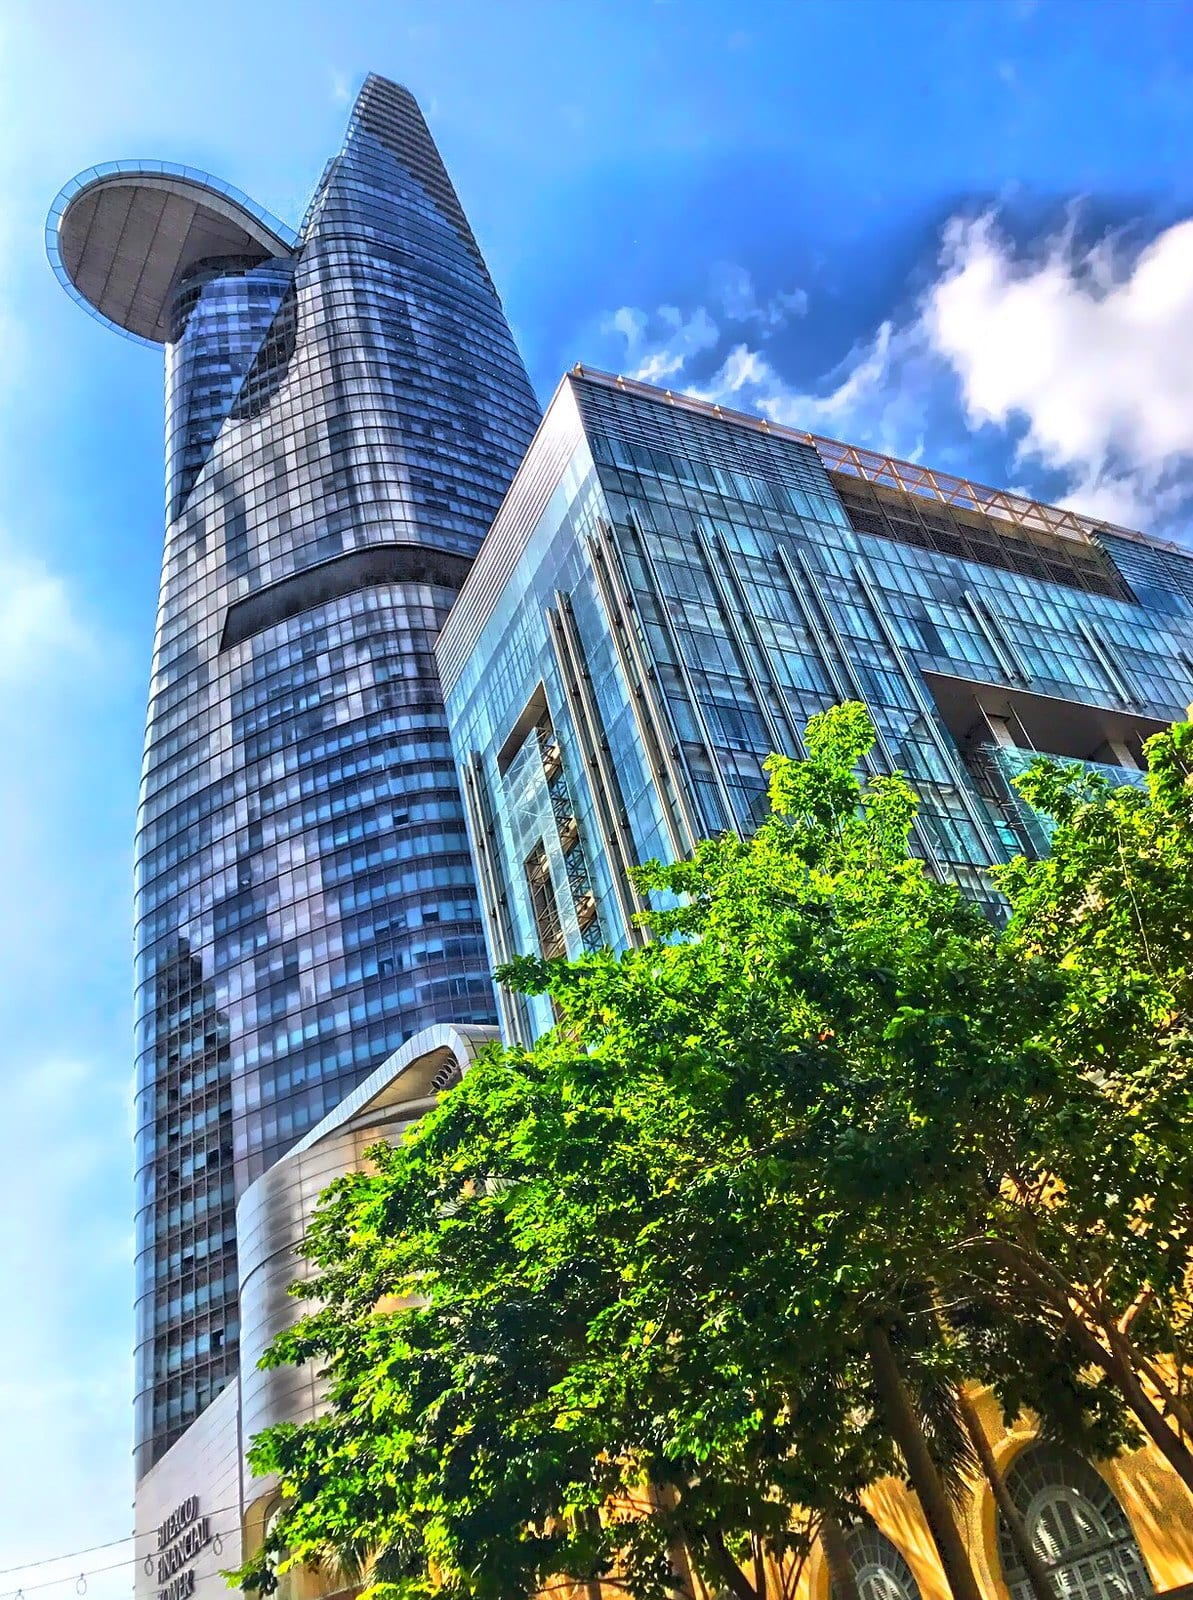 Image of an upwards view of the bitexco financial tower in ho chi minh city in vietnam